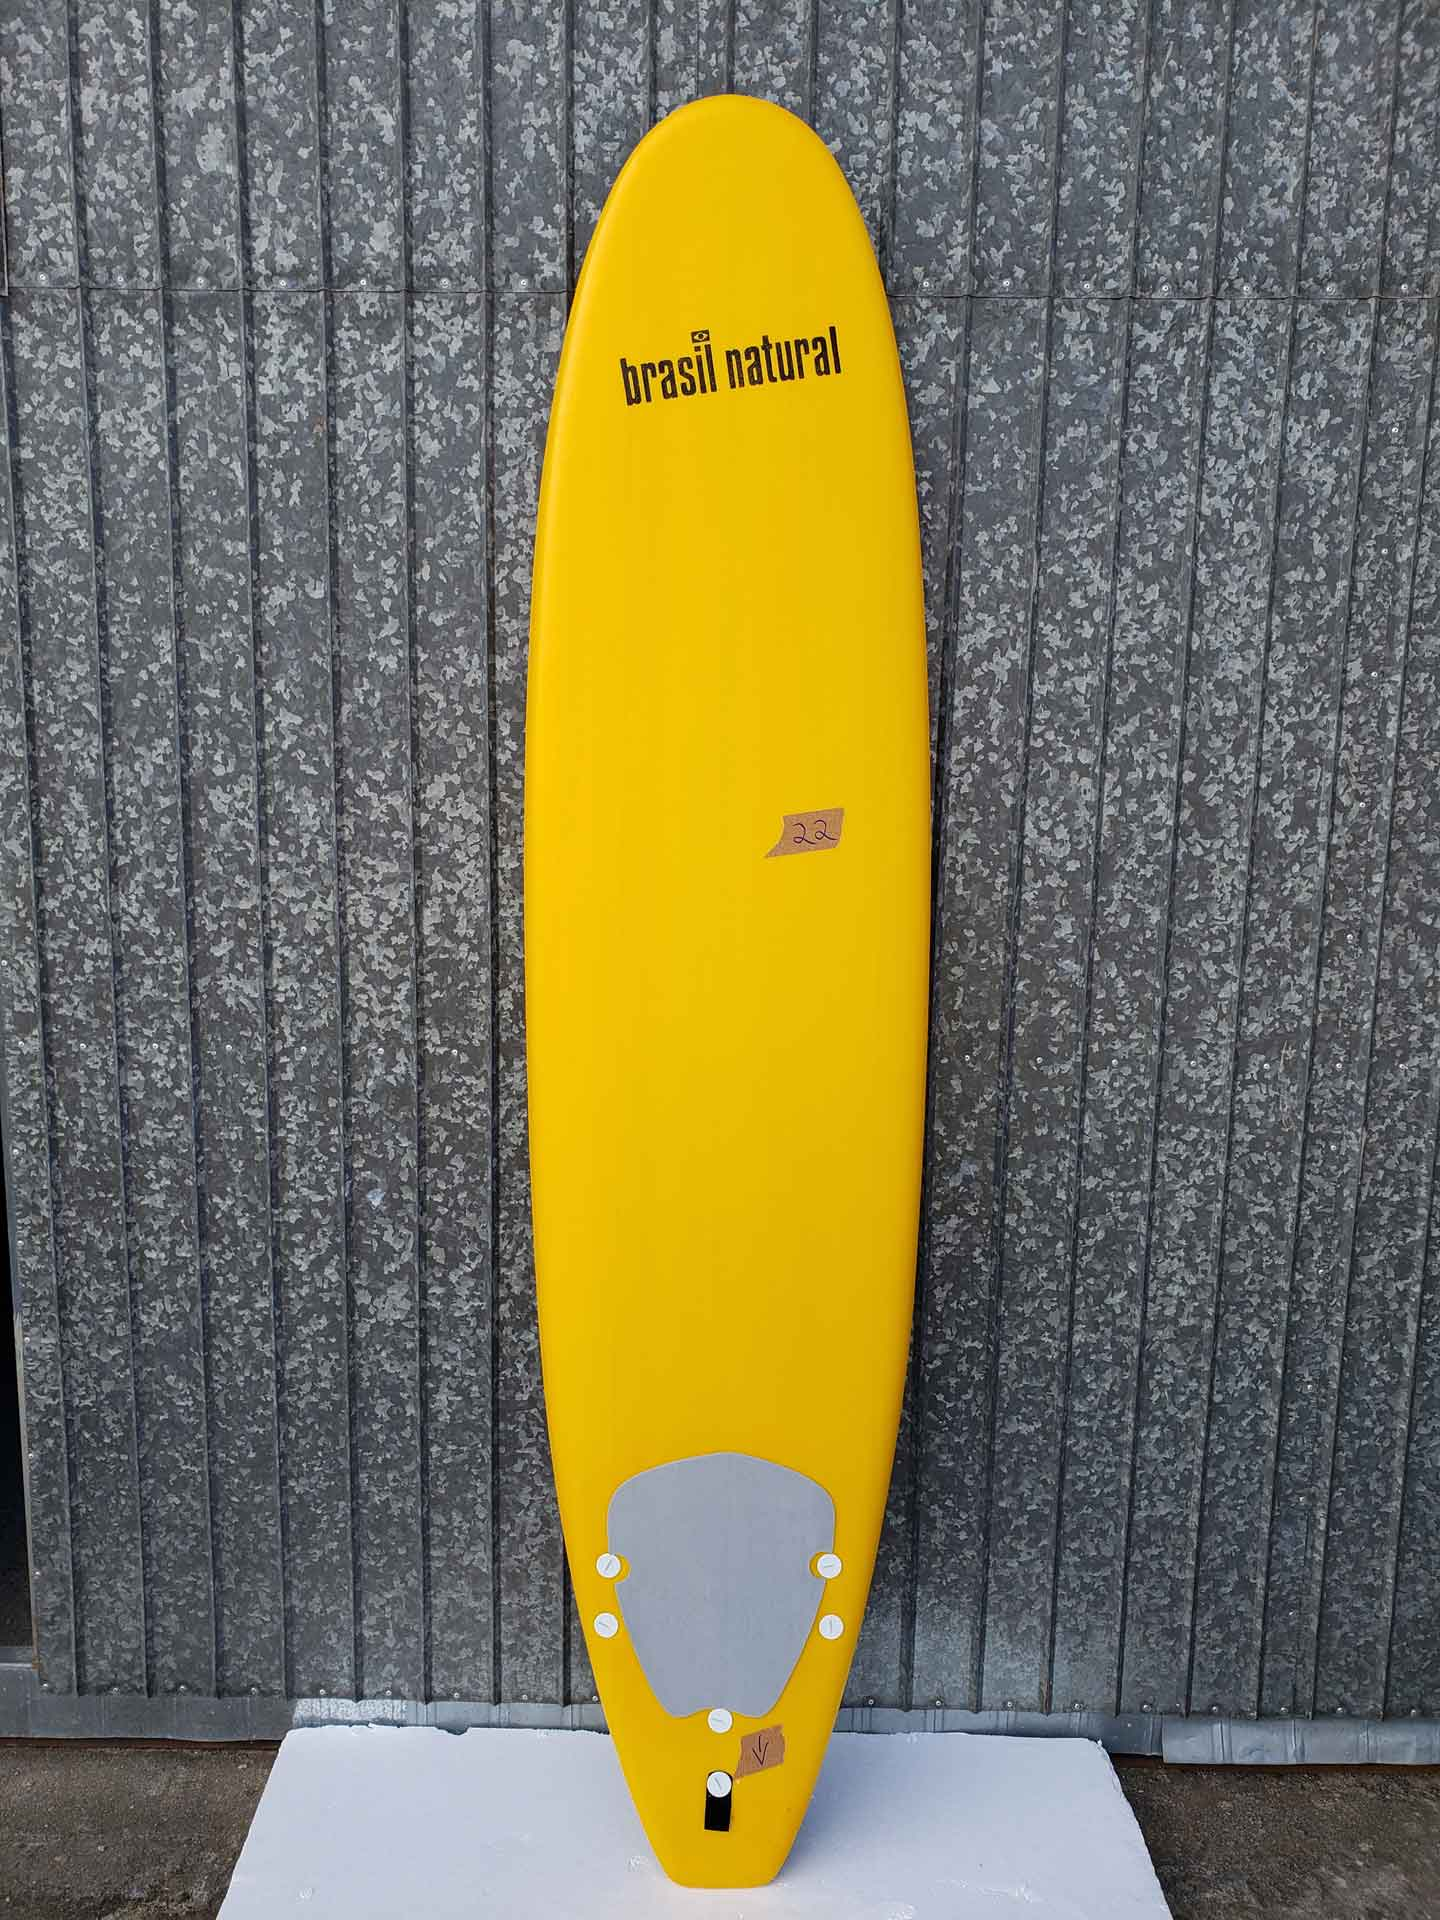 Prancha de surf FUN 7.6 + kit surf - outlet 22